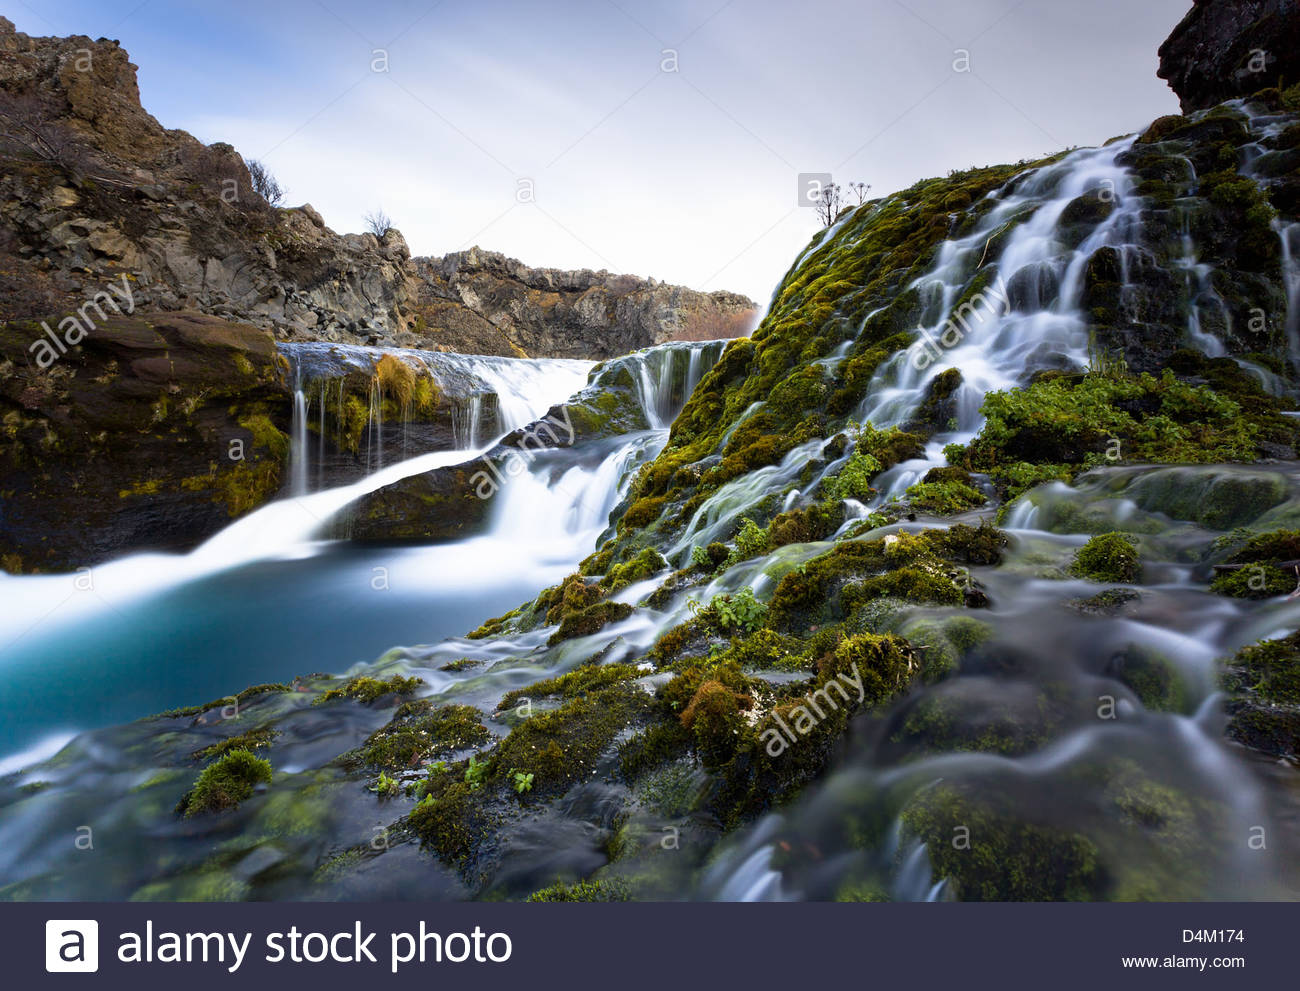 Blurred view of water rushing over rocks - Stock Image